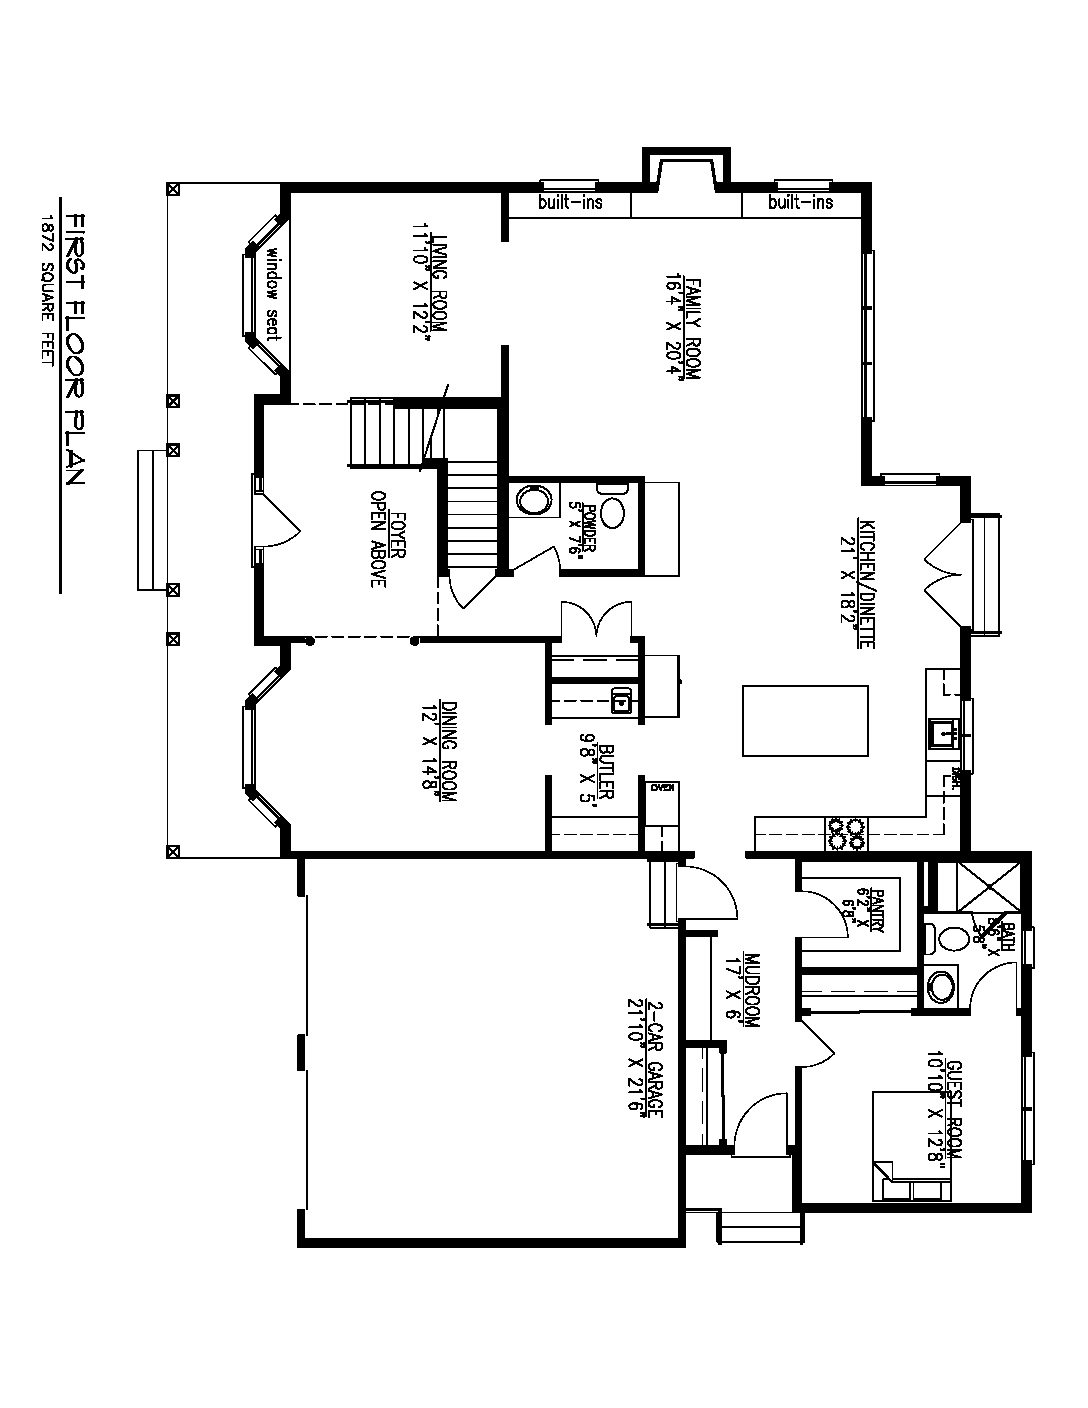 843 Nancy Floor Plans 20170210